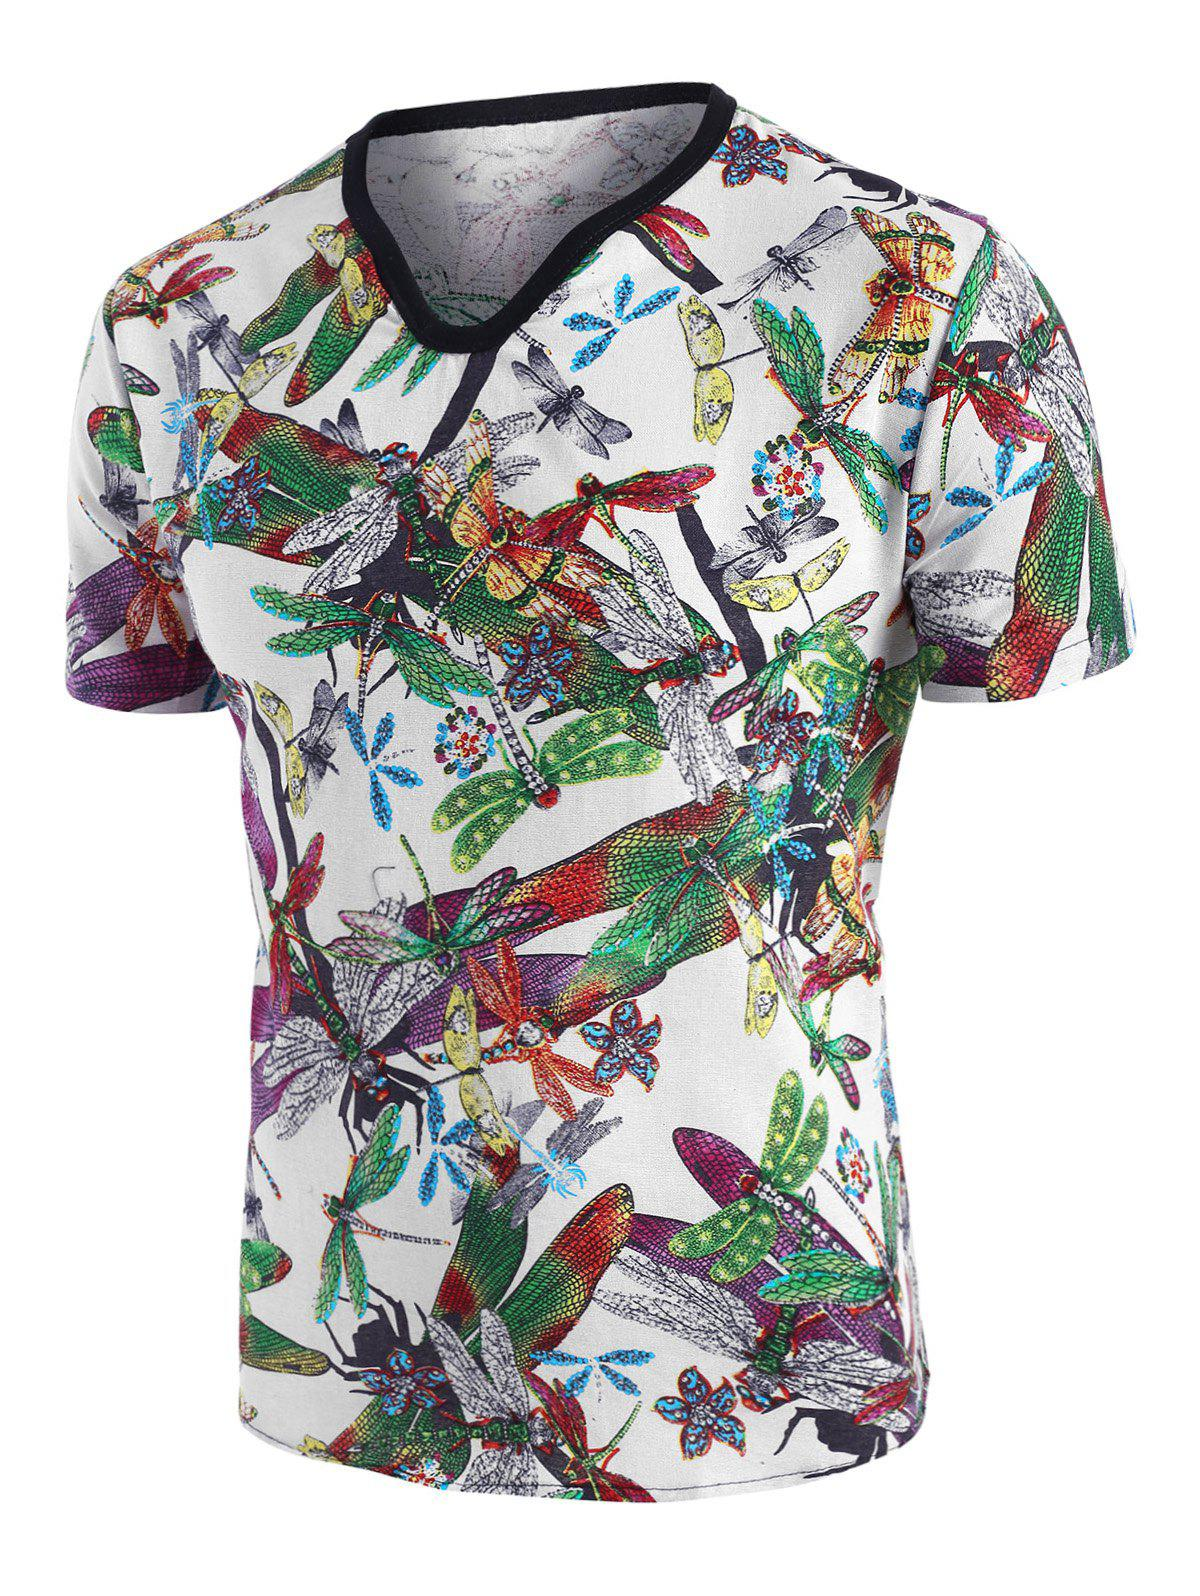 Dragonfly Print Ethnic Short Sleeve T Shirt - multicolor M